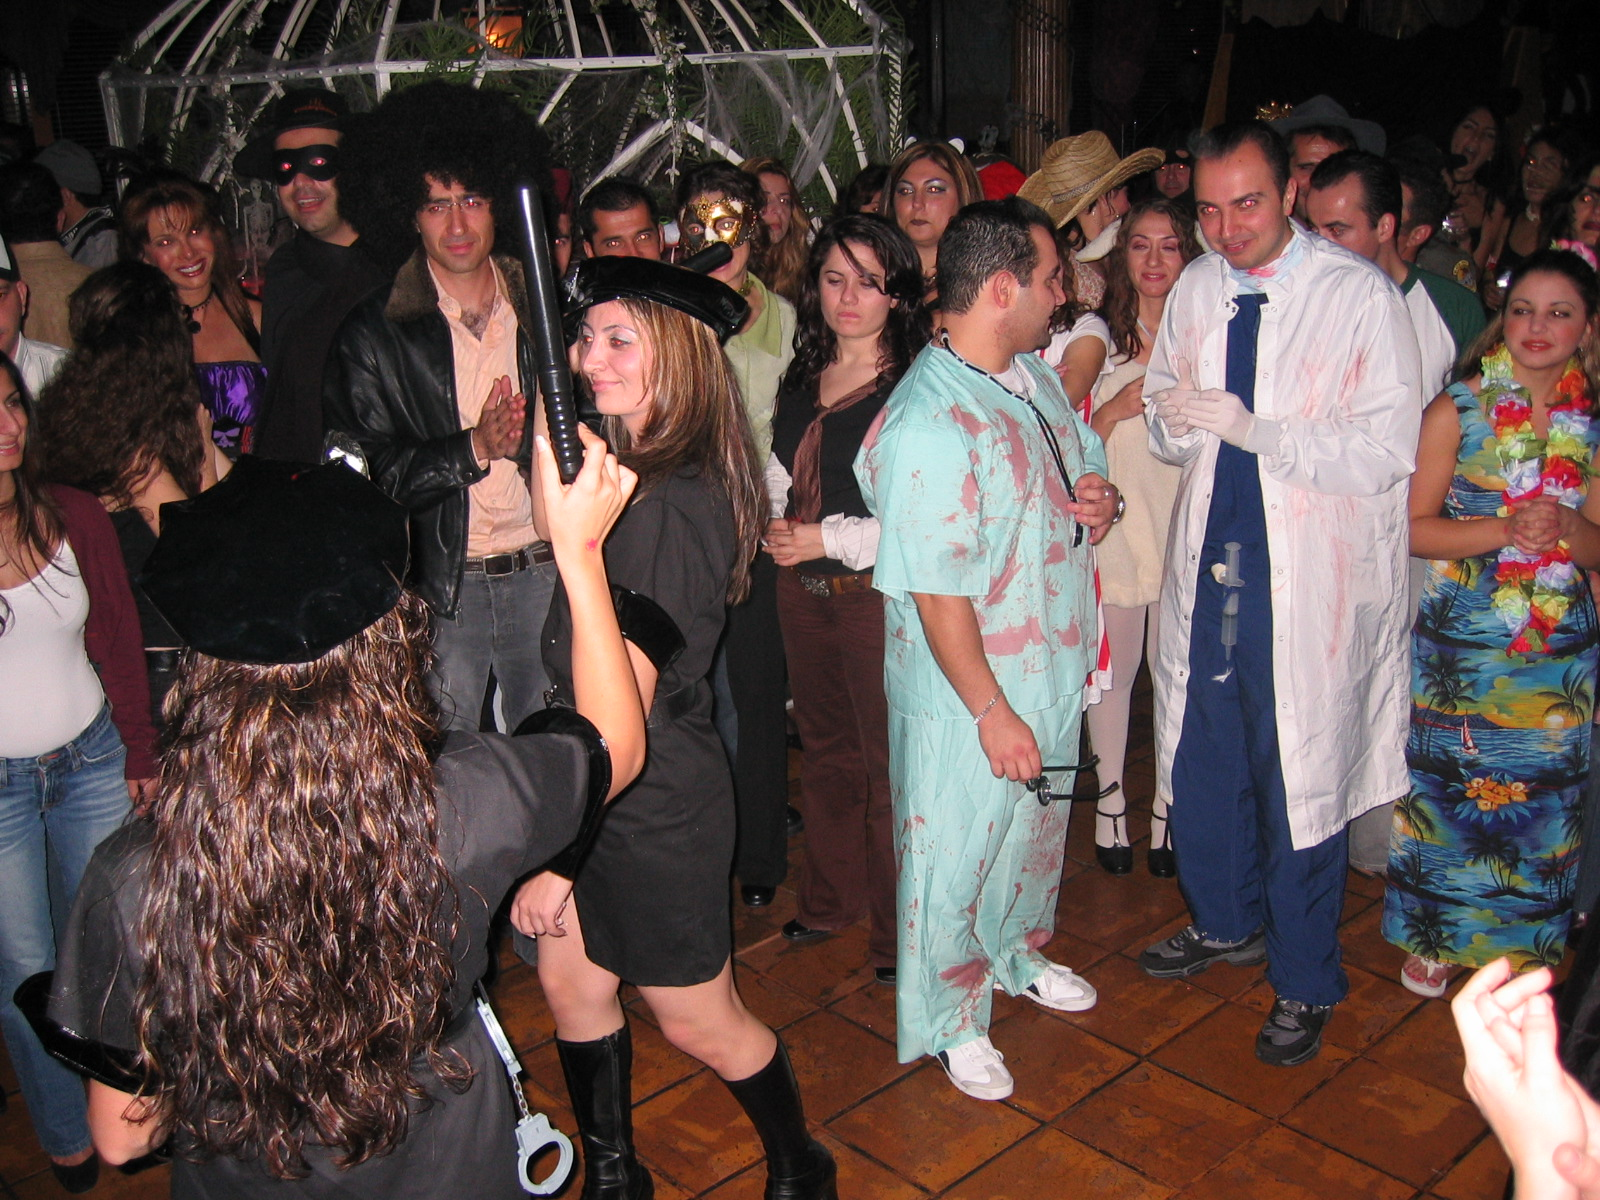 hyeties – halloween party 2004 - organization of istanbul armenians